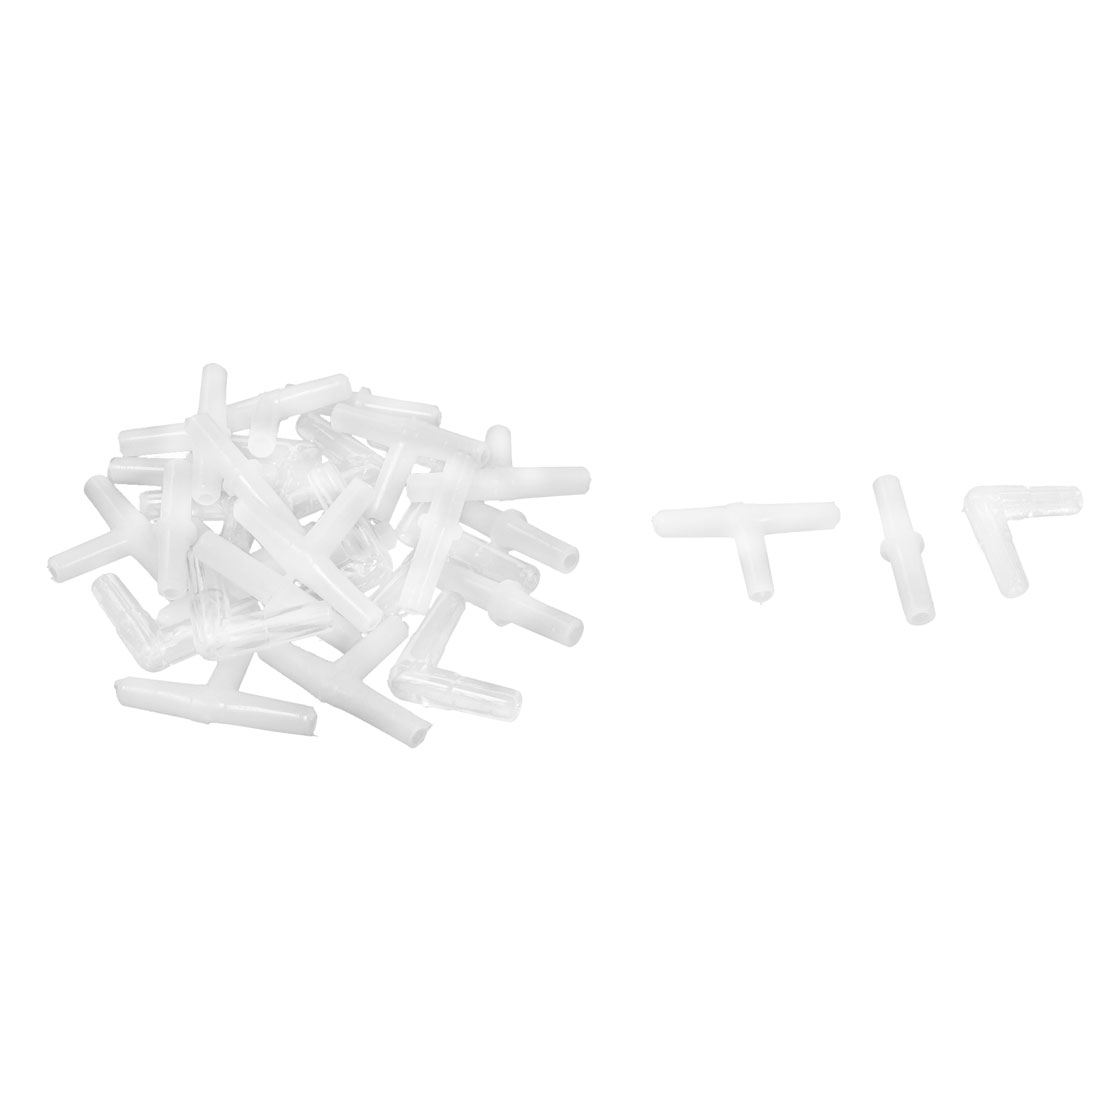 30 Pcs Clear White Plastic Air Tubing Connector Hose for Aquarium Fish Tank